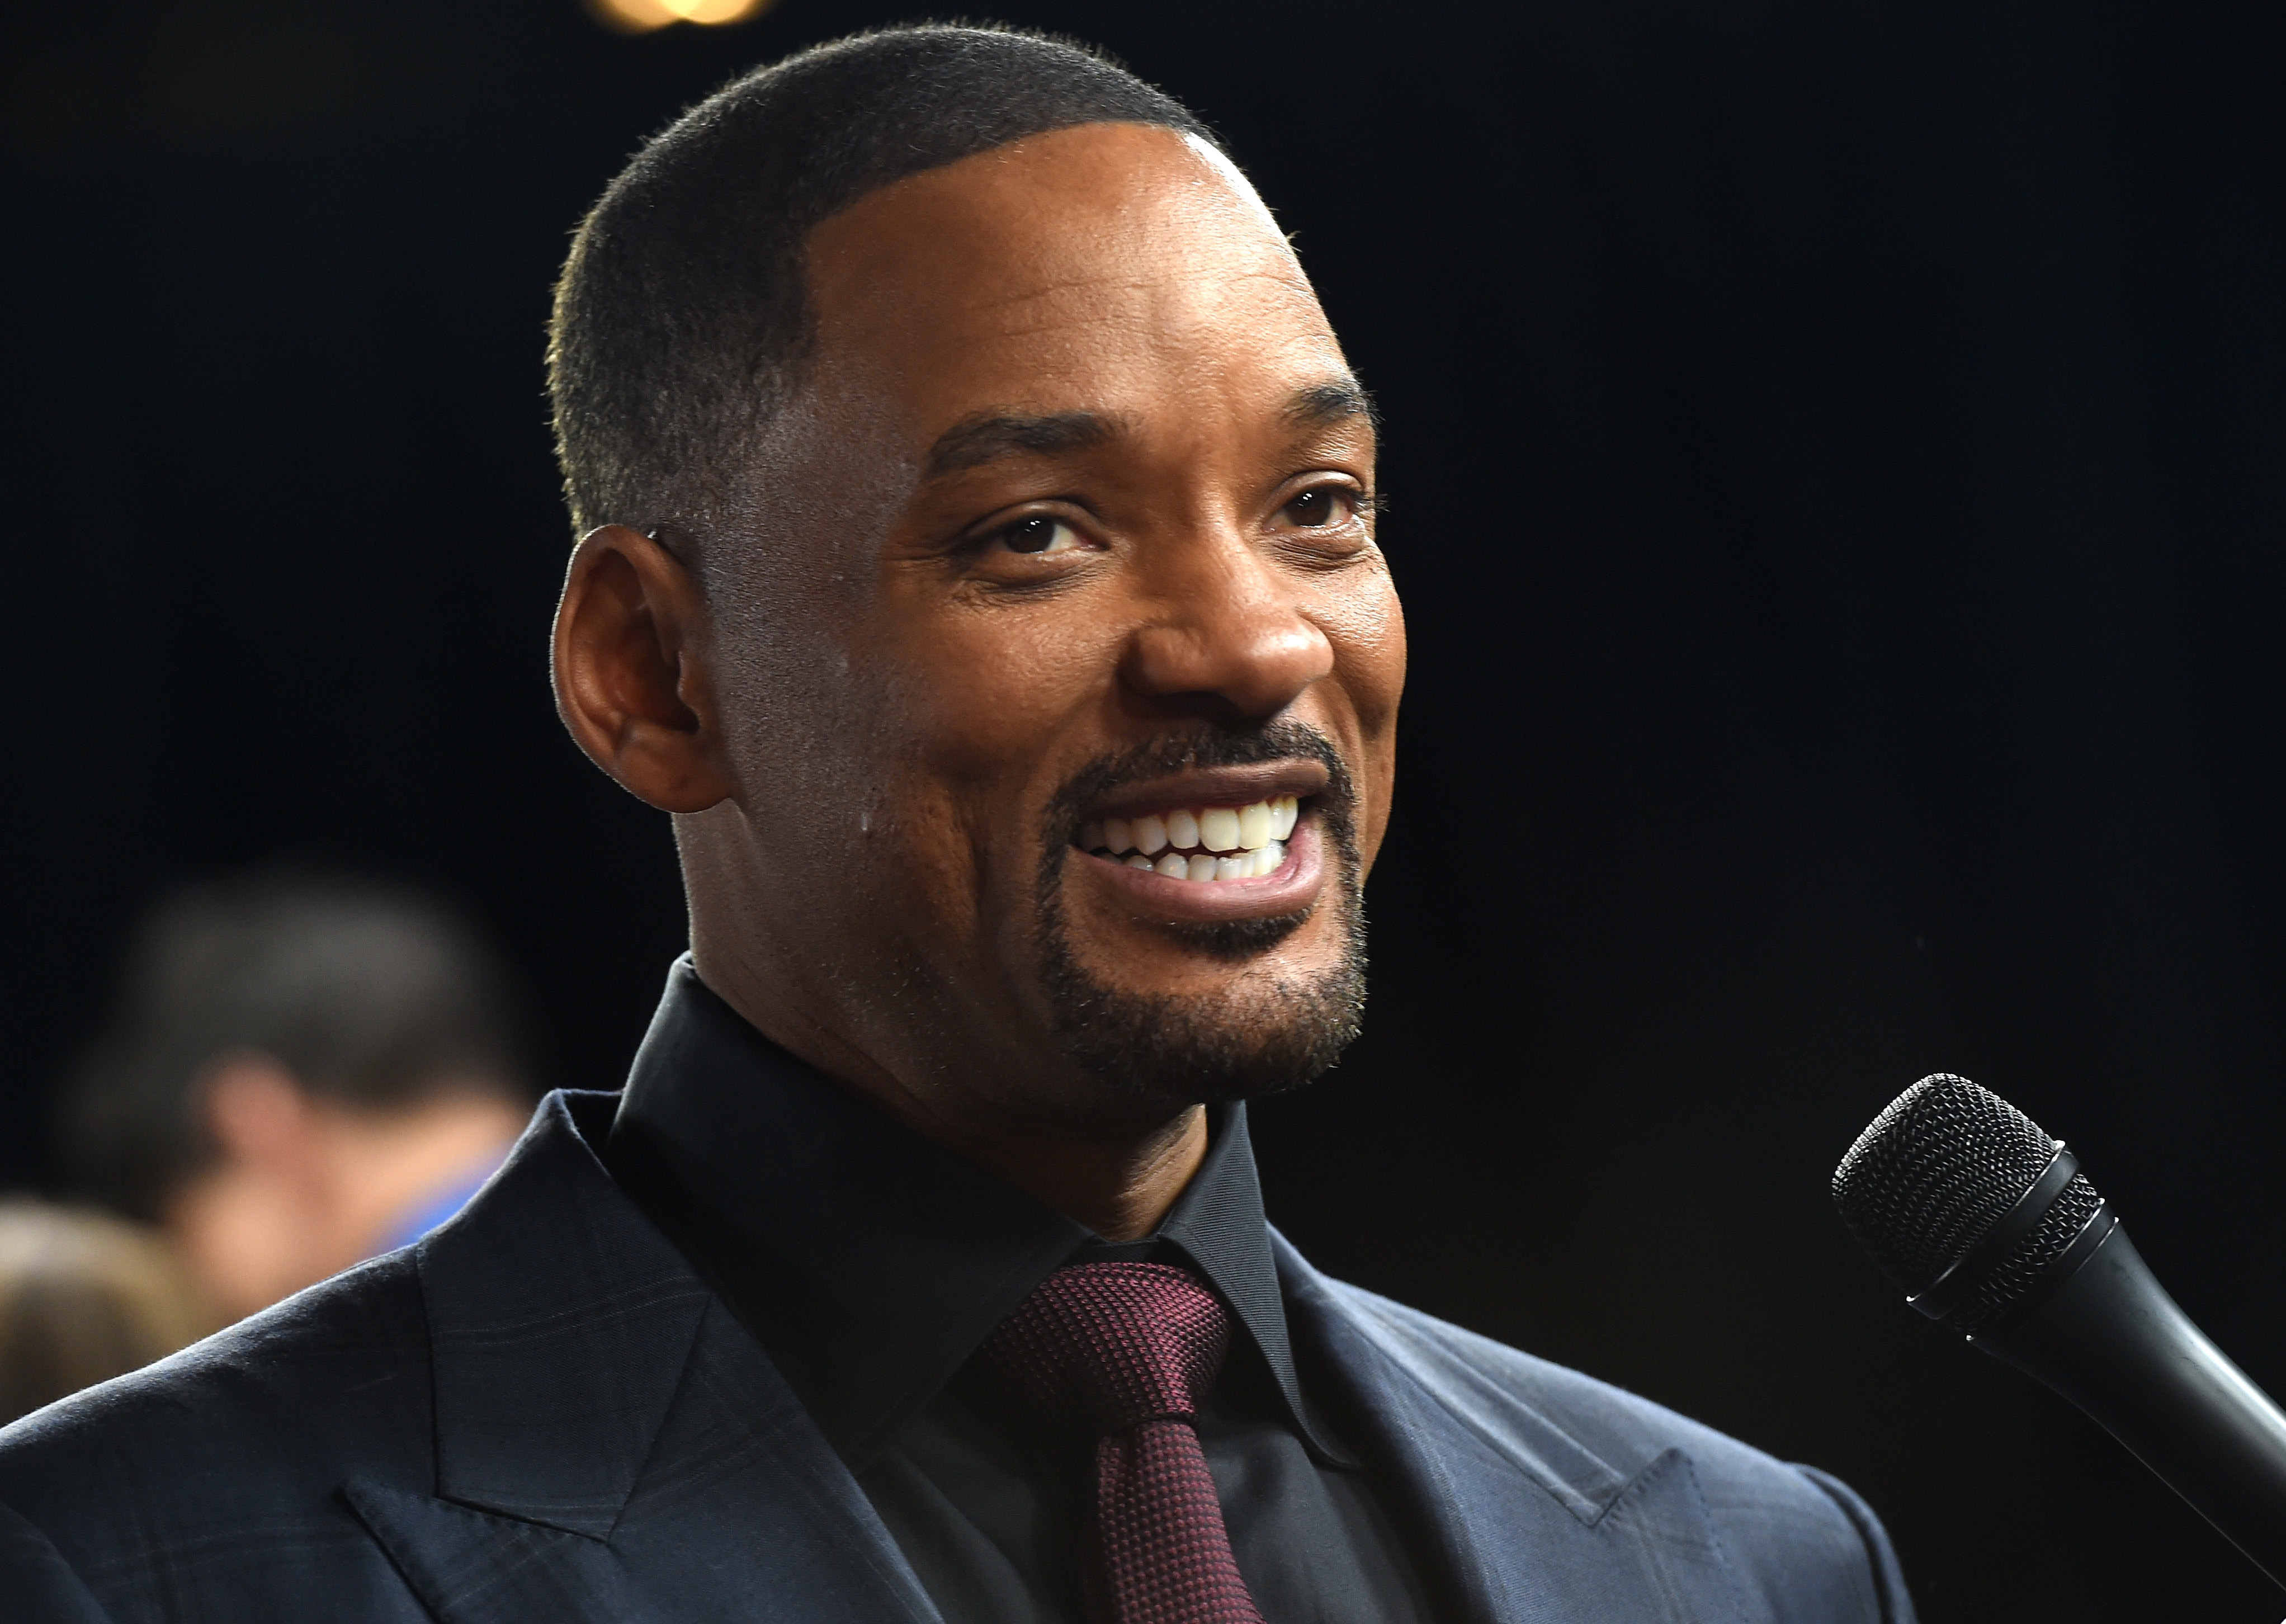 Will Smith Continues Tío Adventures by Performing at Latin Grammys With Bad Bunny & Marc Anthony